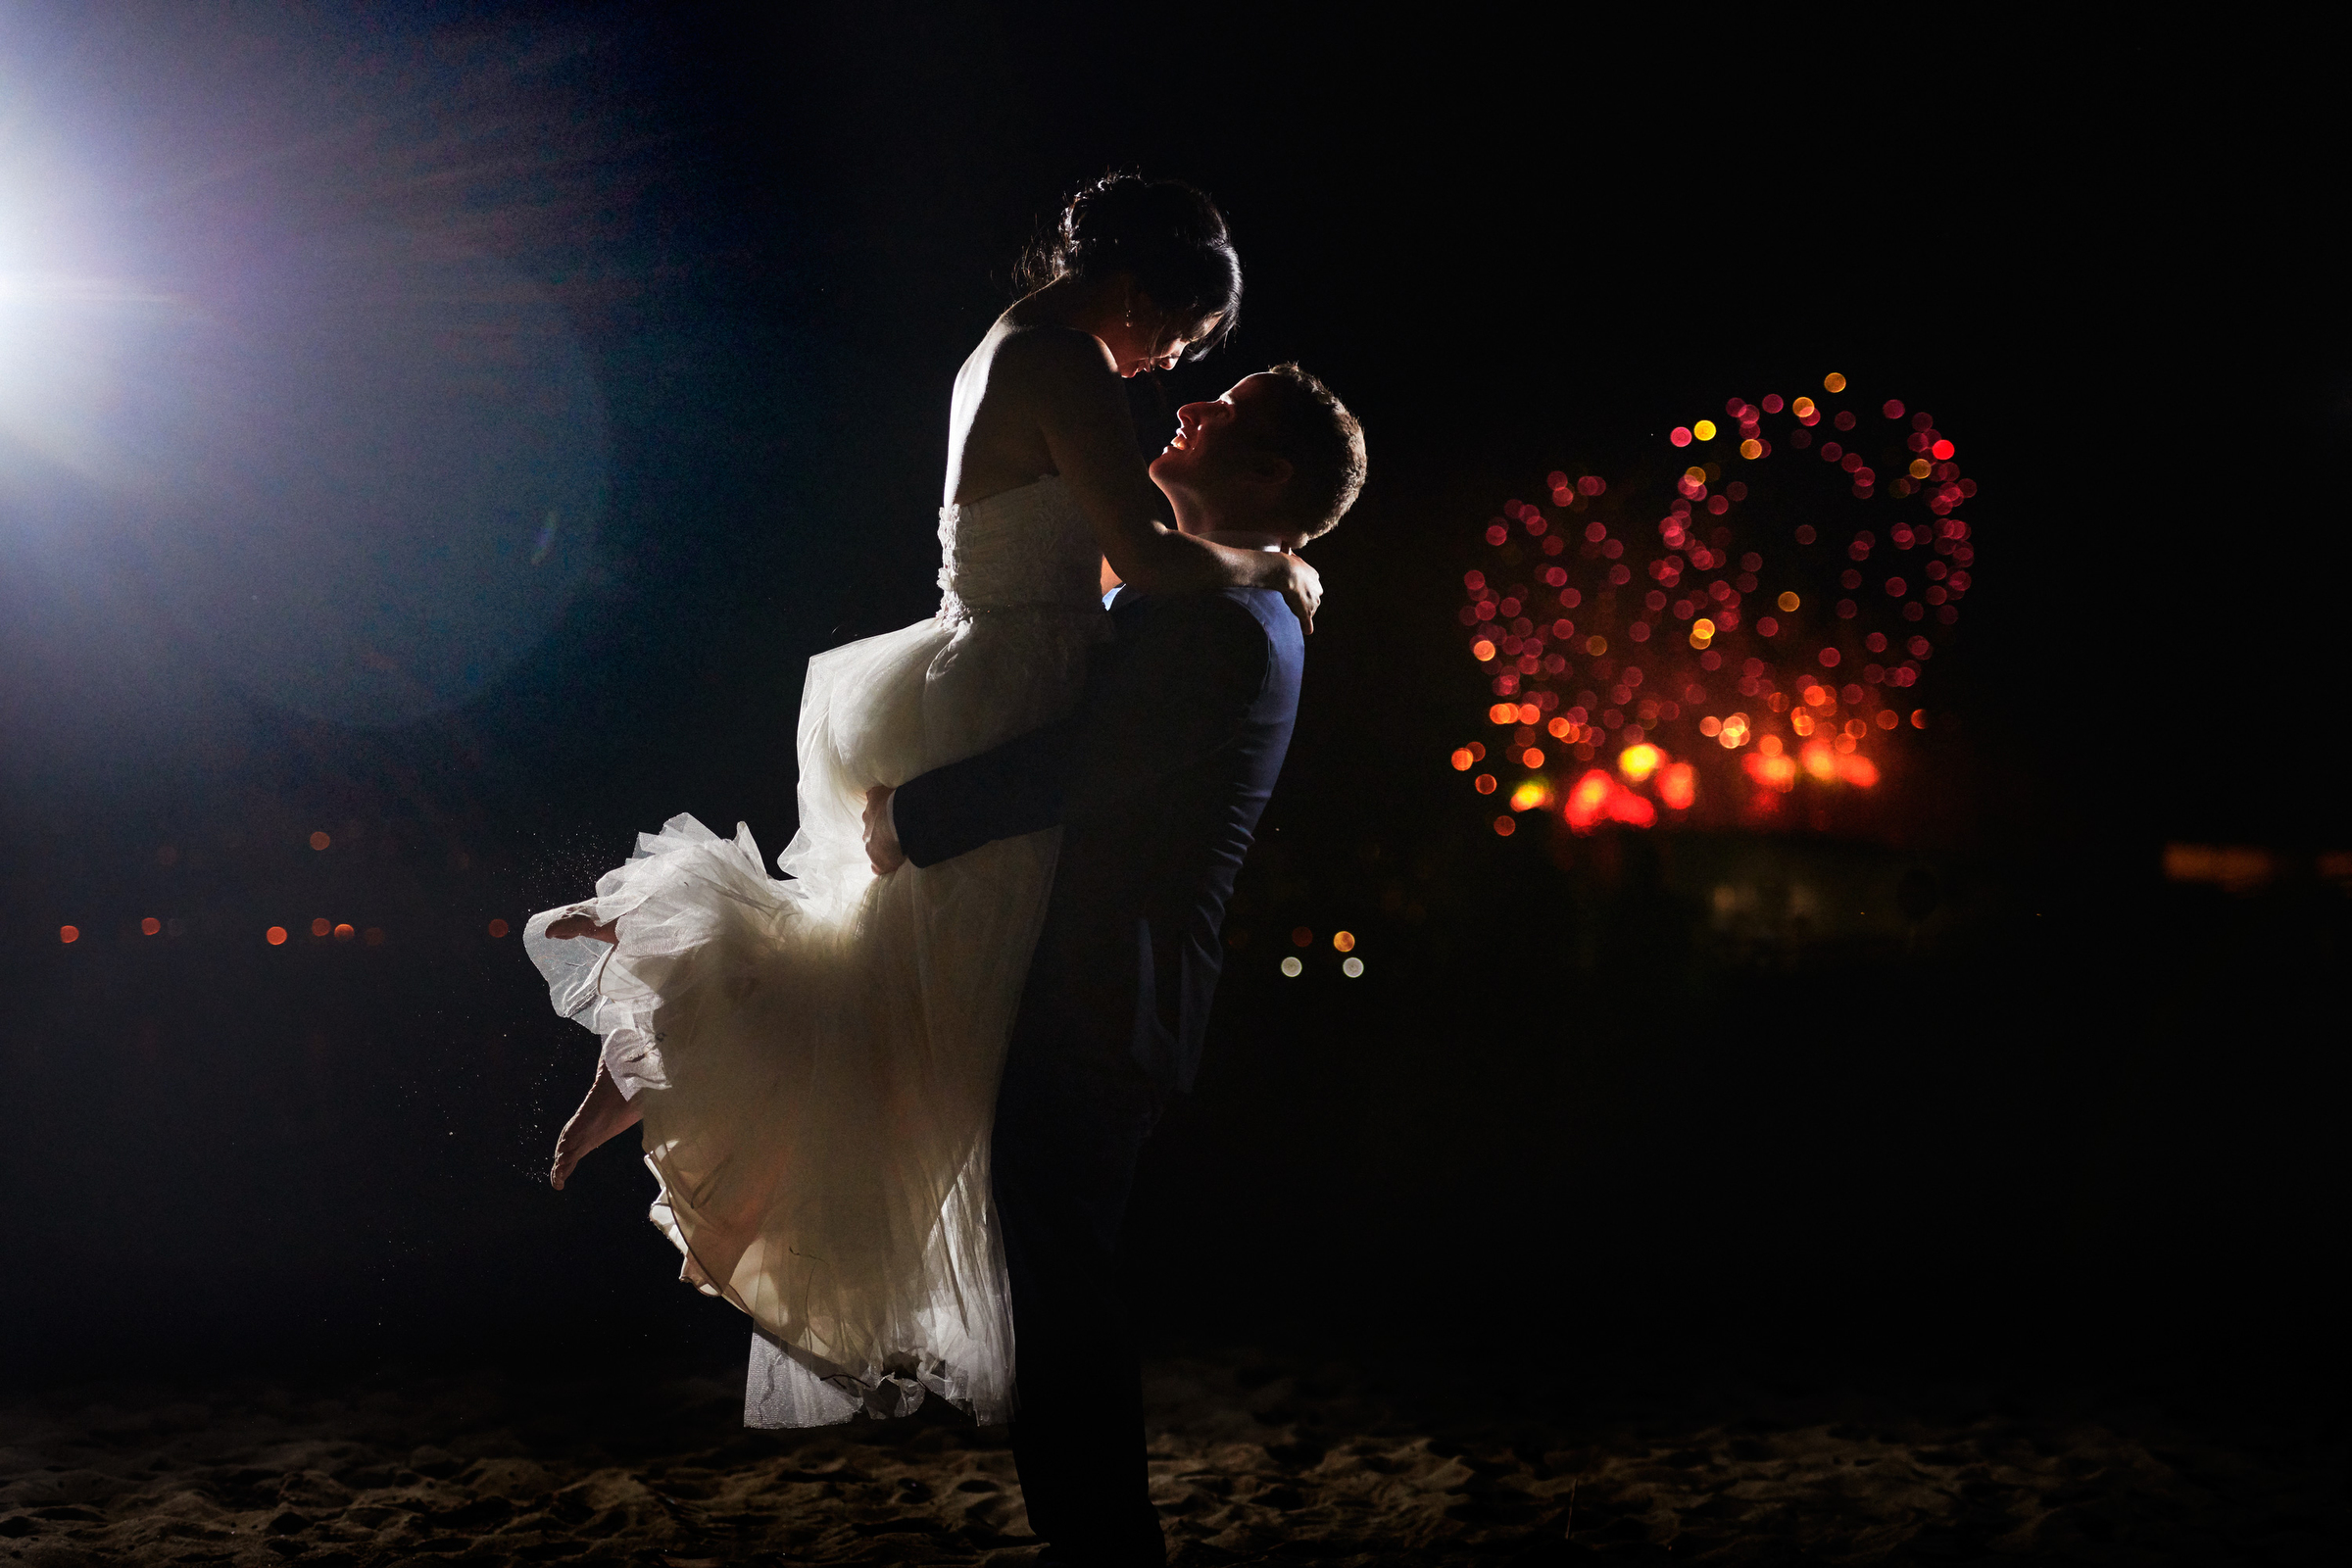 Groom lifts bride against fireworks - photo by Jozef Povazan Photography